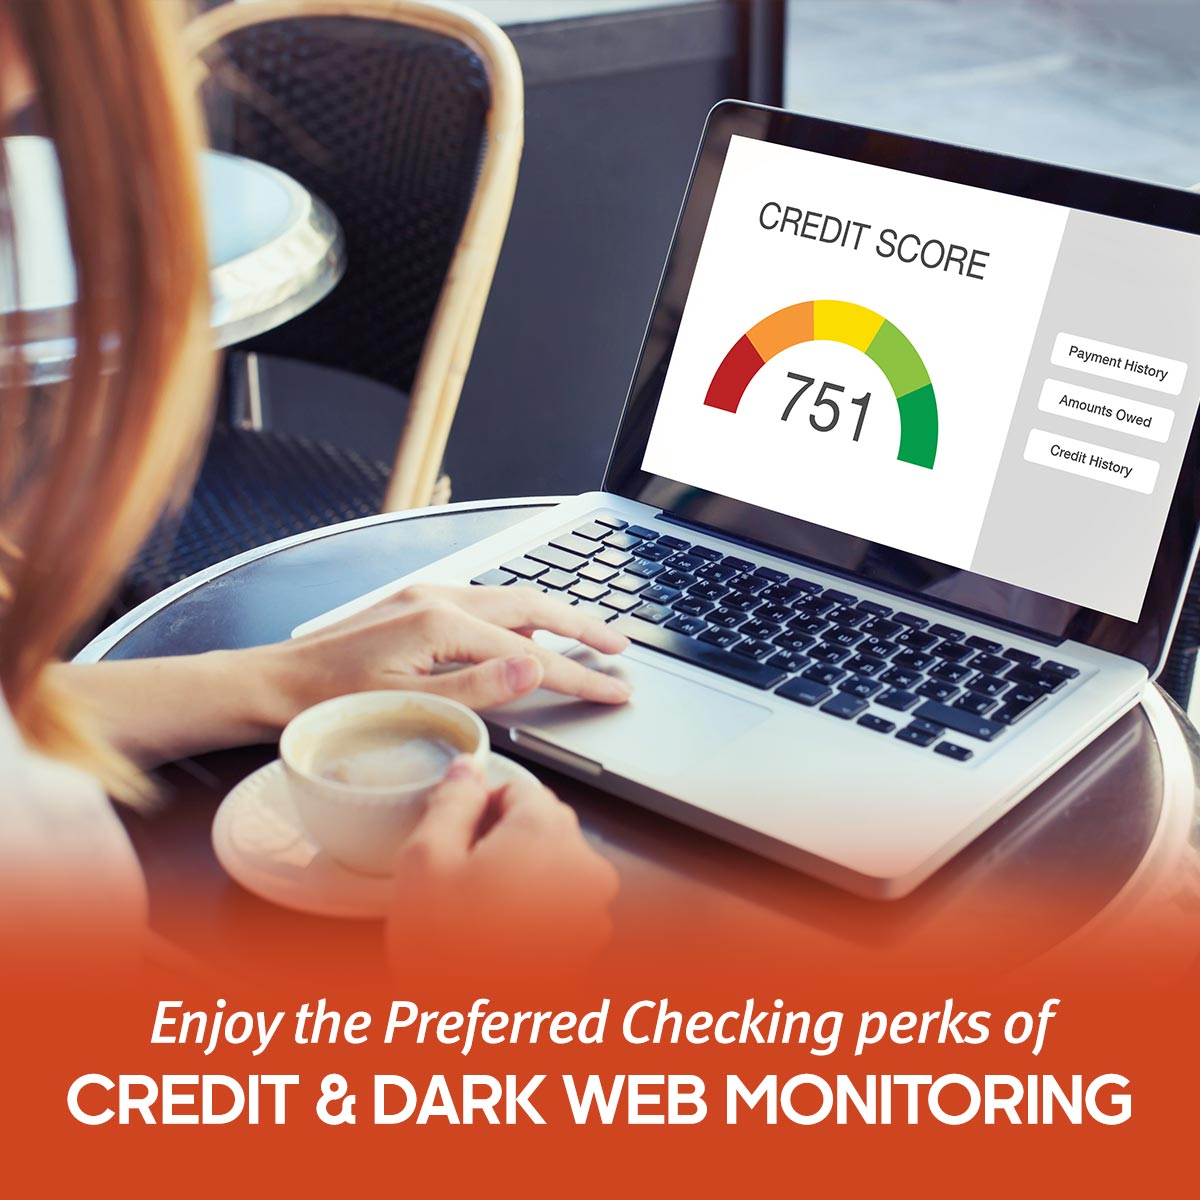 You're Covered with Credit and Dark Web Monitoring